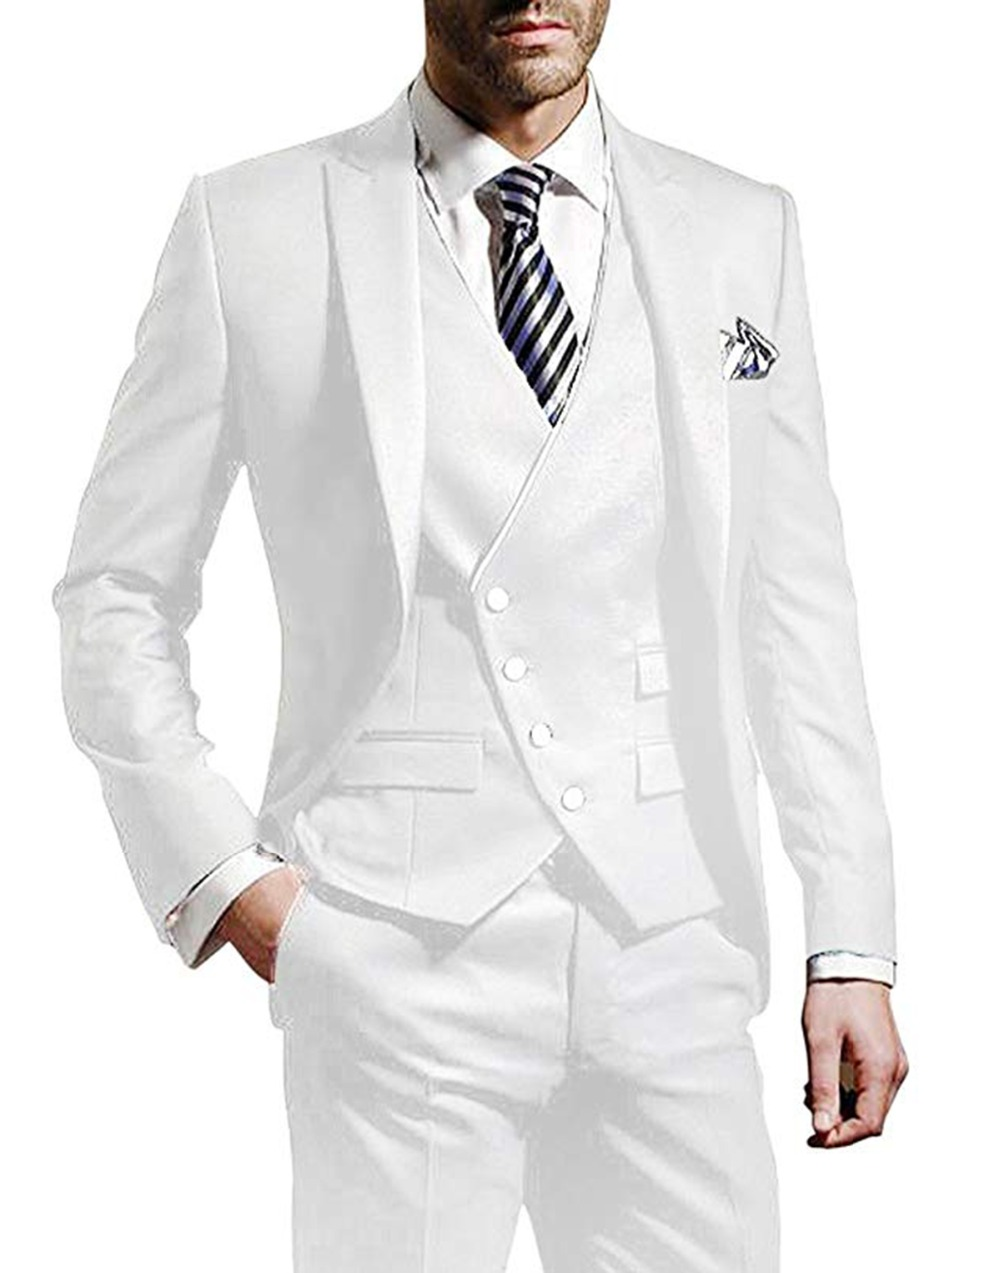 3 Pieces Men Suits Notched Lable White Groomsuit Blazer One Button Formal Business Suits Tuxedo (( Blazer+vest+Pant)